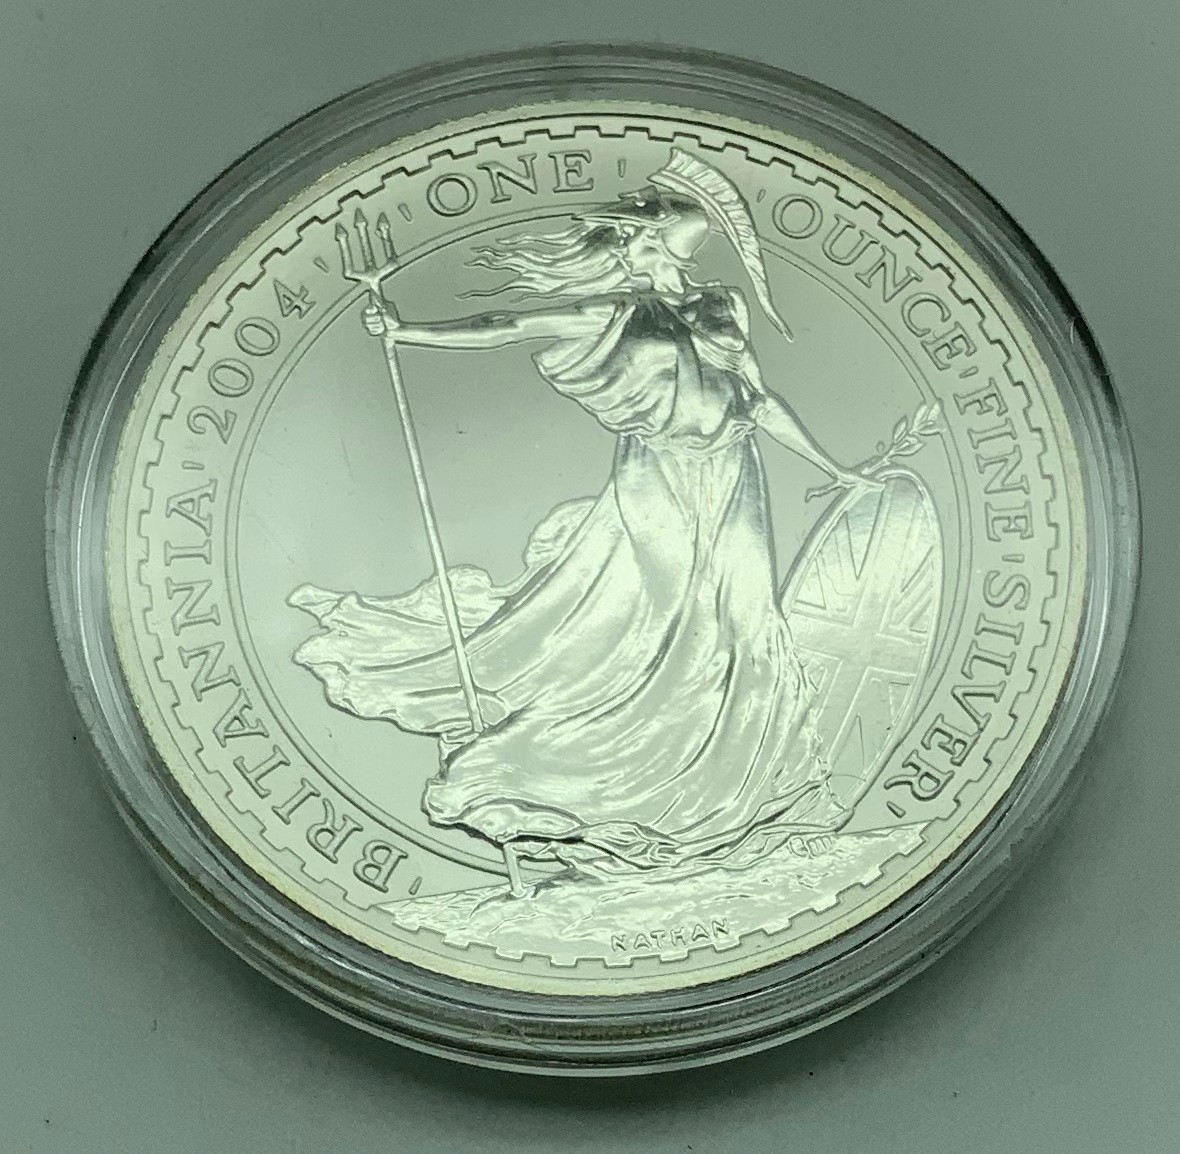 2004 BRITANNIA TWO POUNDS ONE-OUNCE SILVER COIN - Image 2 of 2